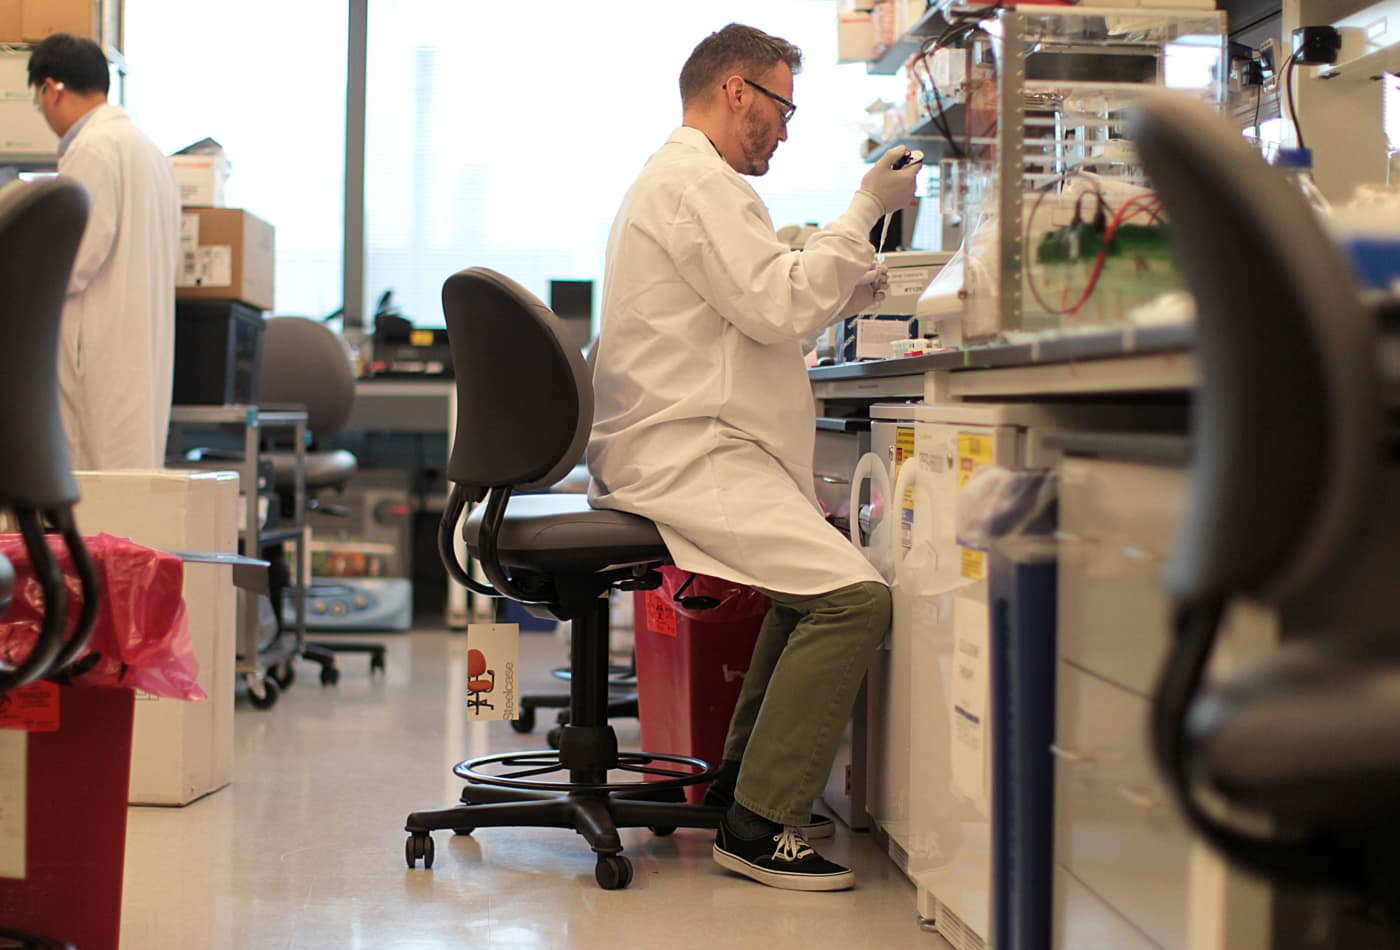 Biogen's potentially game-changing Alzheimer's drug still faces an uphill battle with the FDA